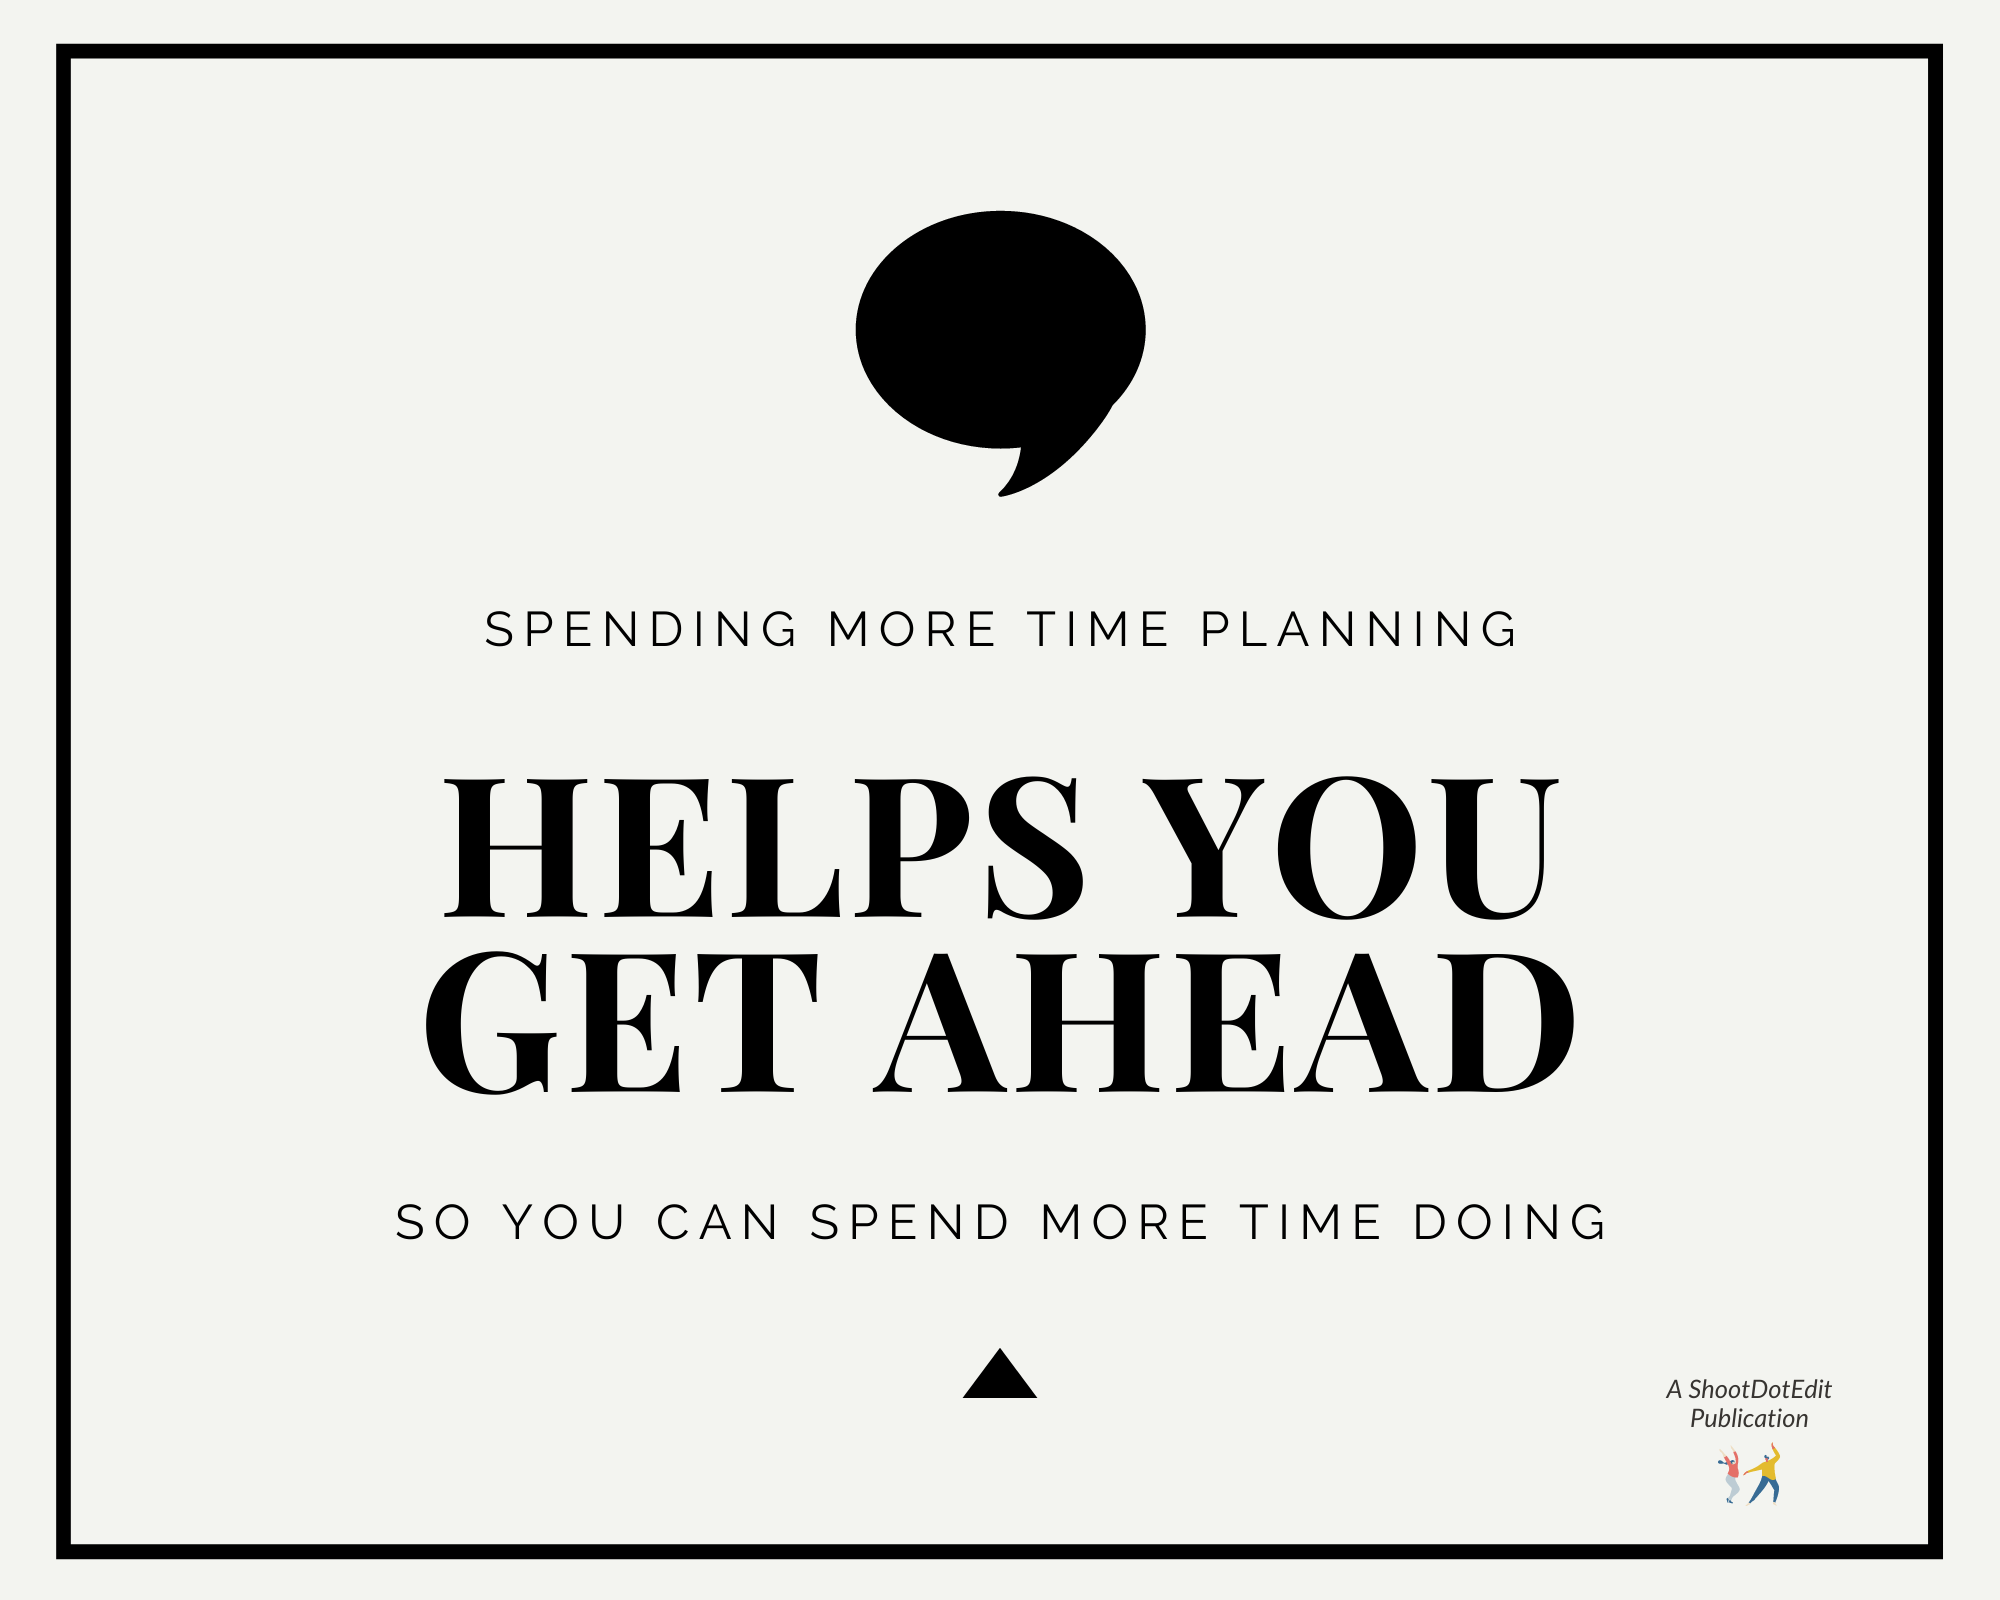 Graphic displaying - Spending more time planning helps you get ahead so you can spend more time doing